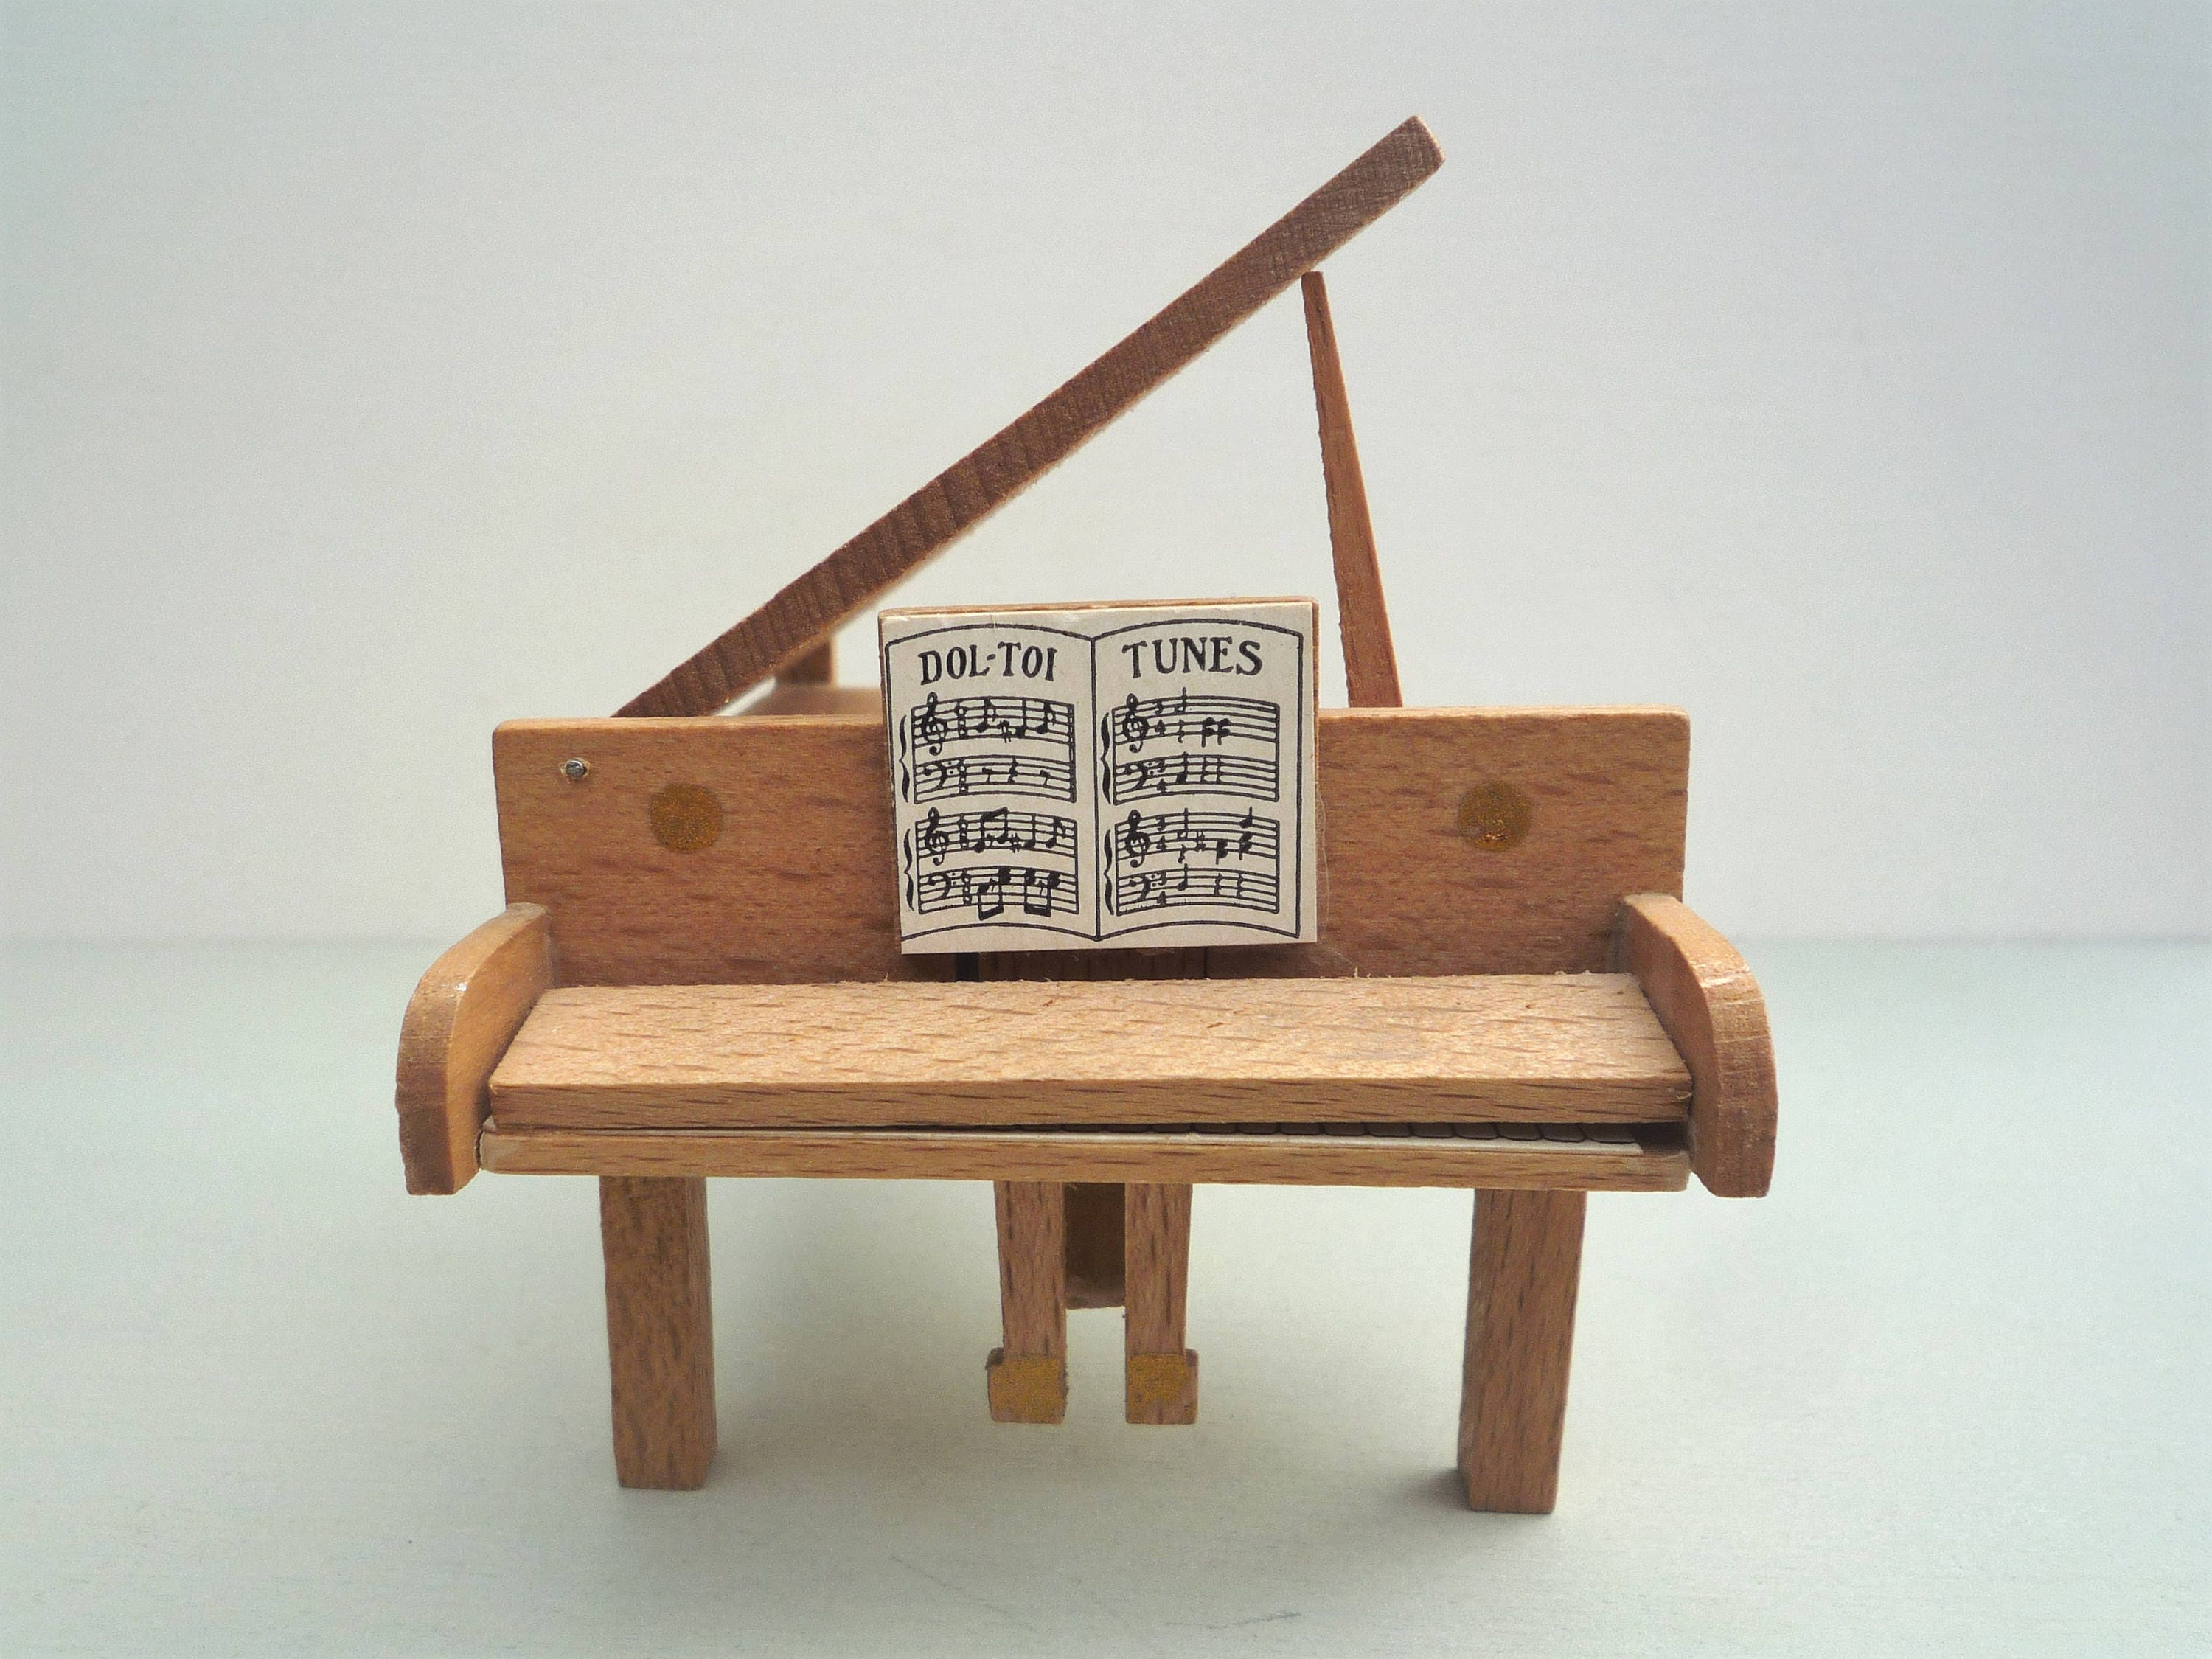 Dol Toi Grand Piano, Vintage Dolls House Miniature Wood Furniture 1/16 Scale